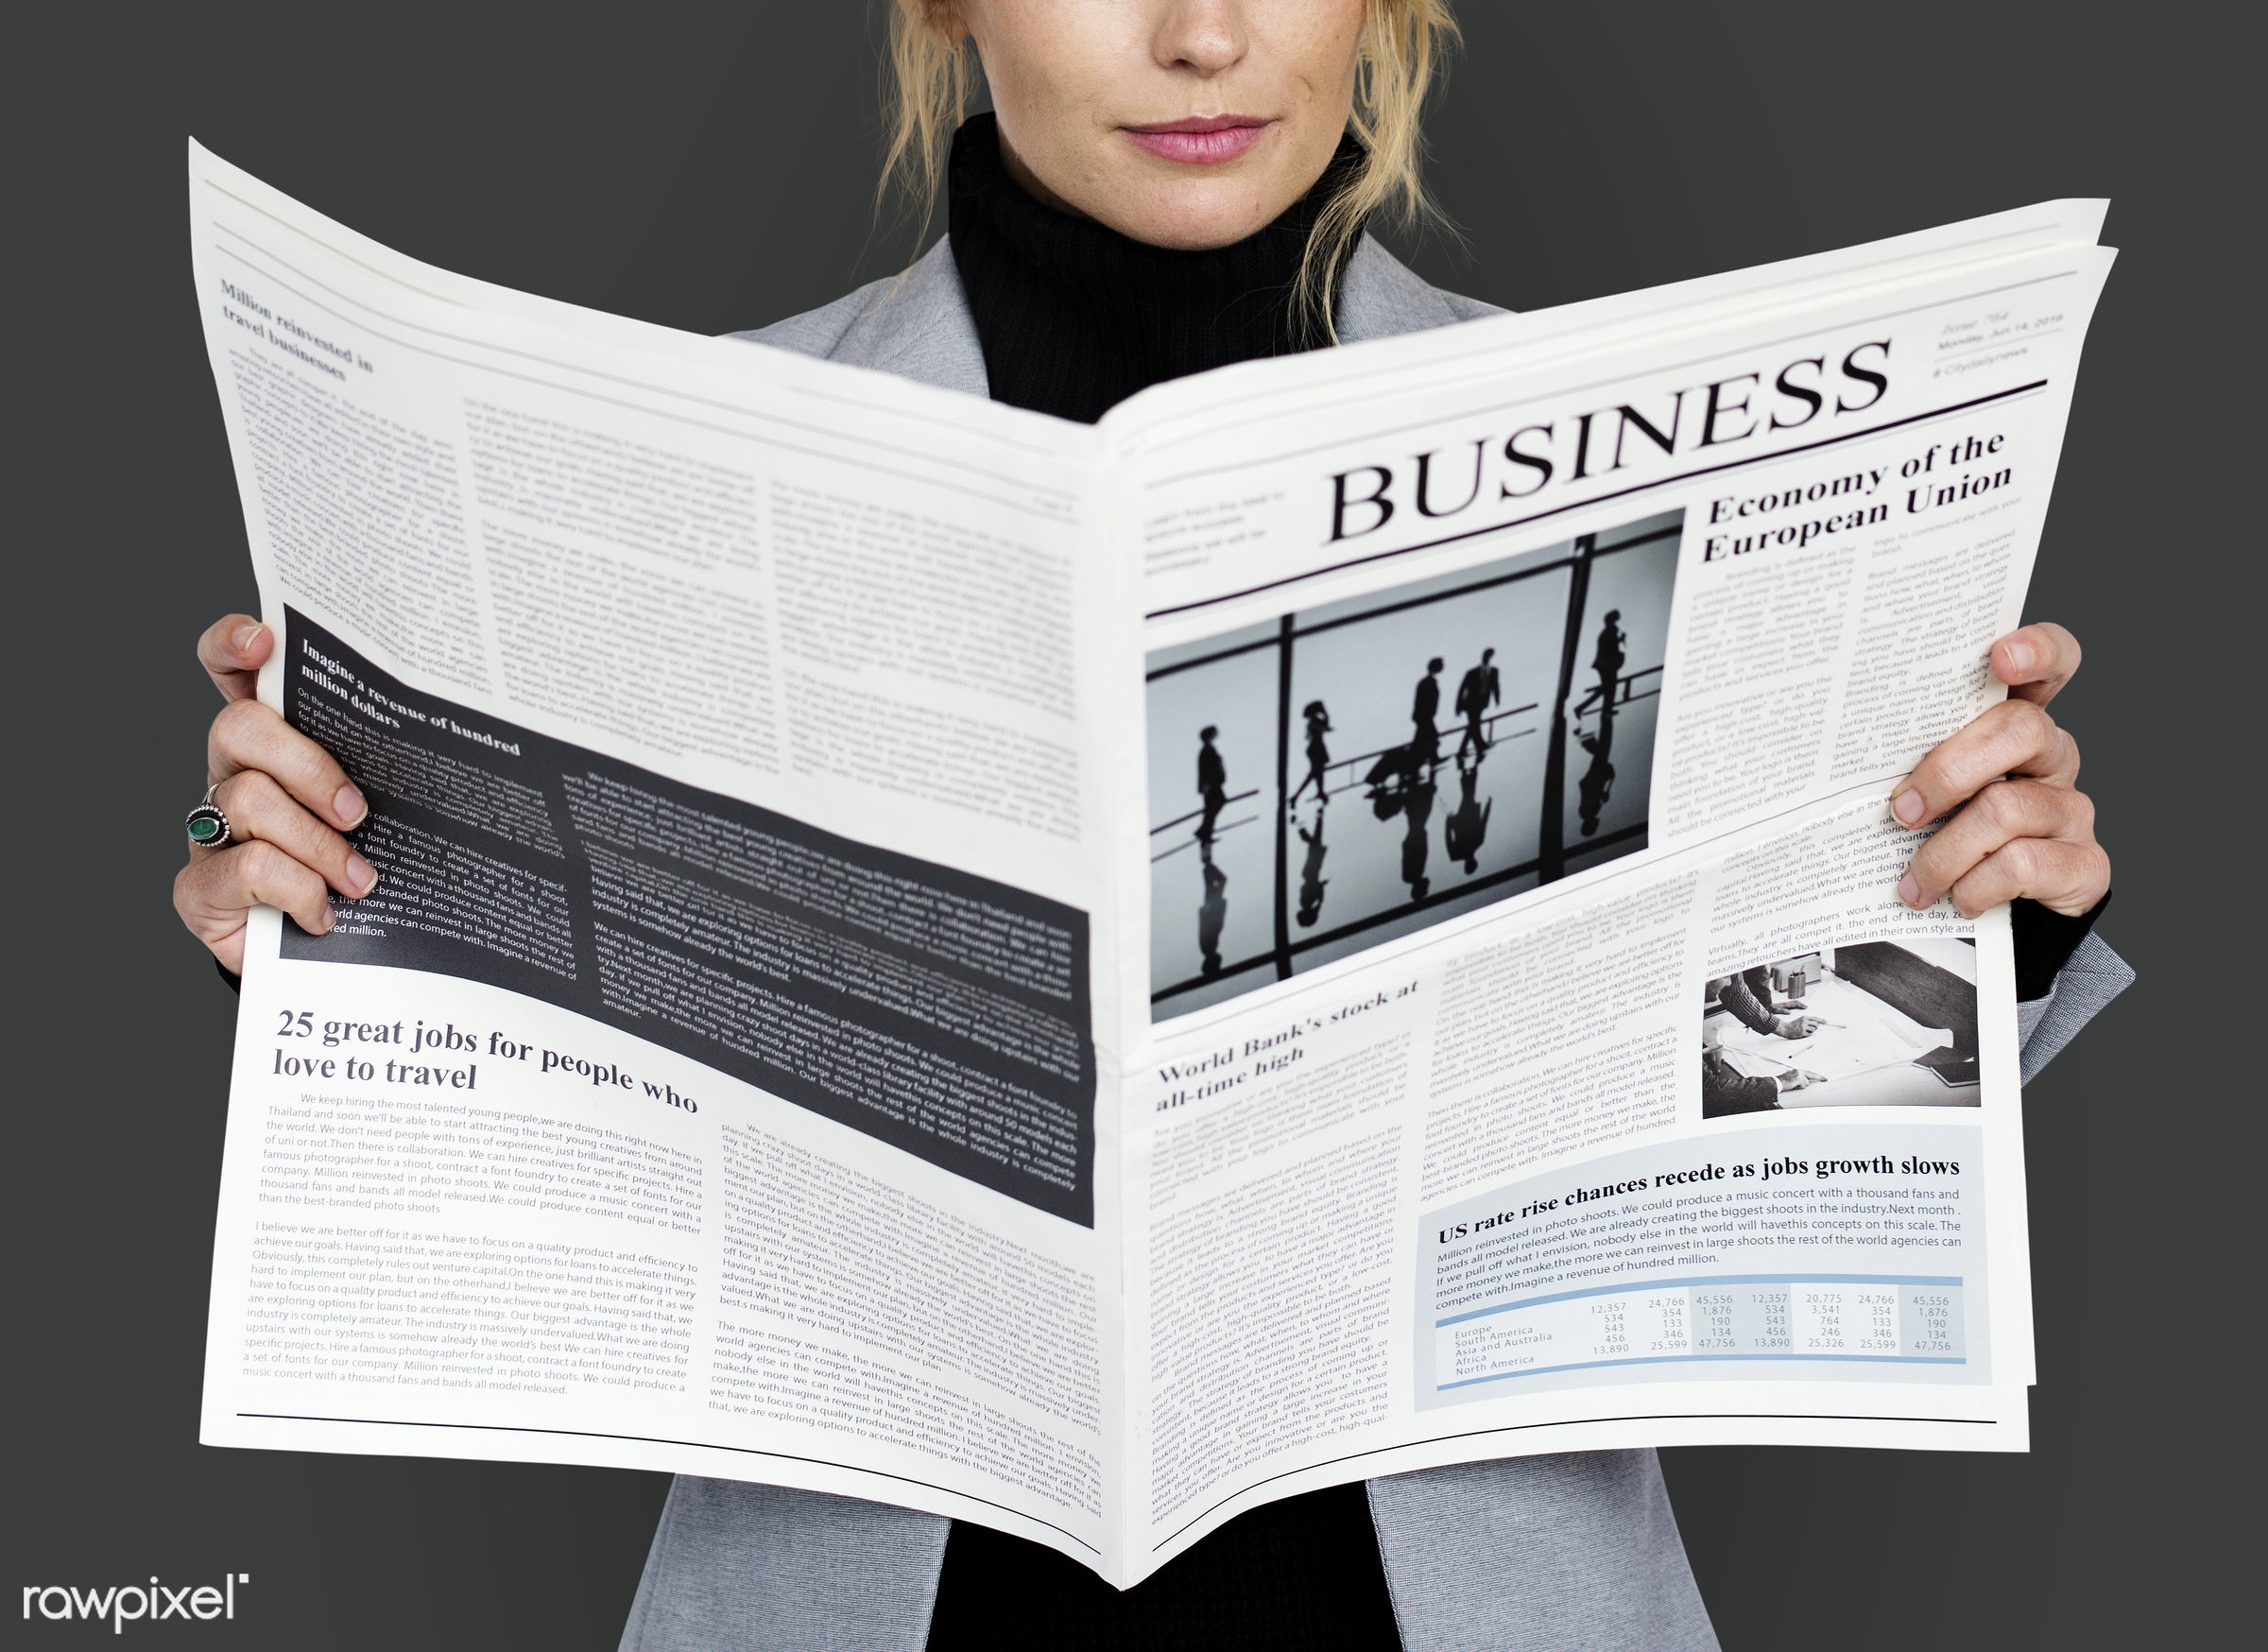 background, business, business dressing, business newspaper, business wear, business woman, cheerful, expression, female,...